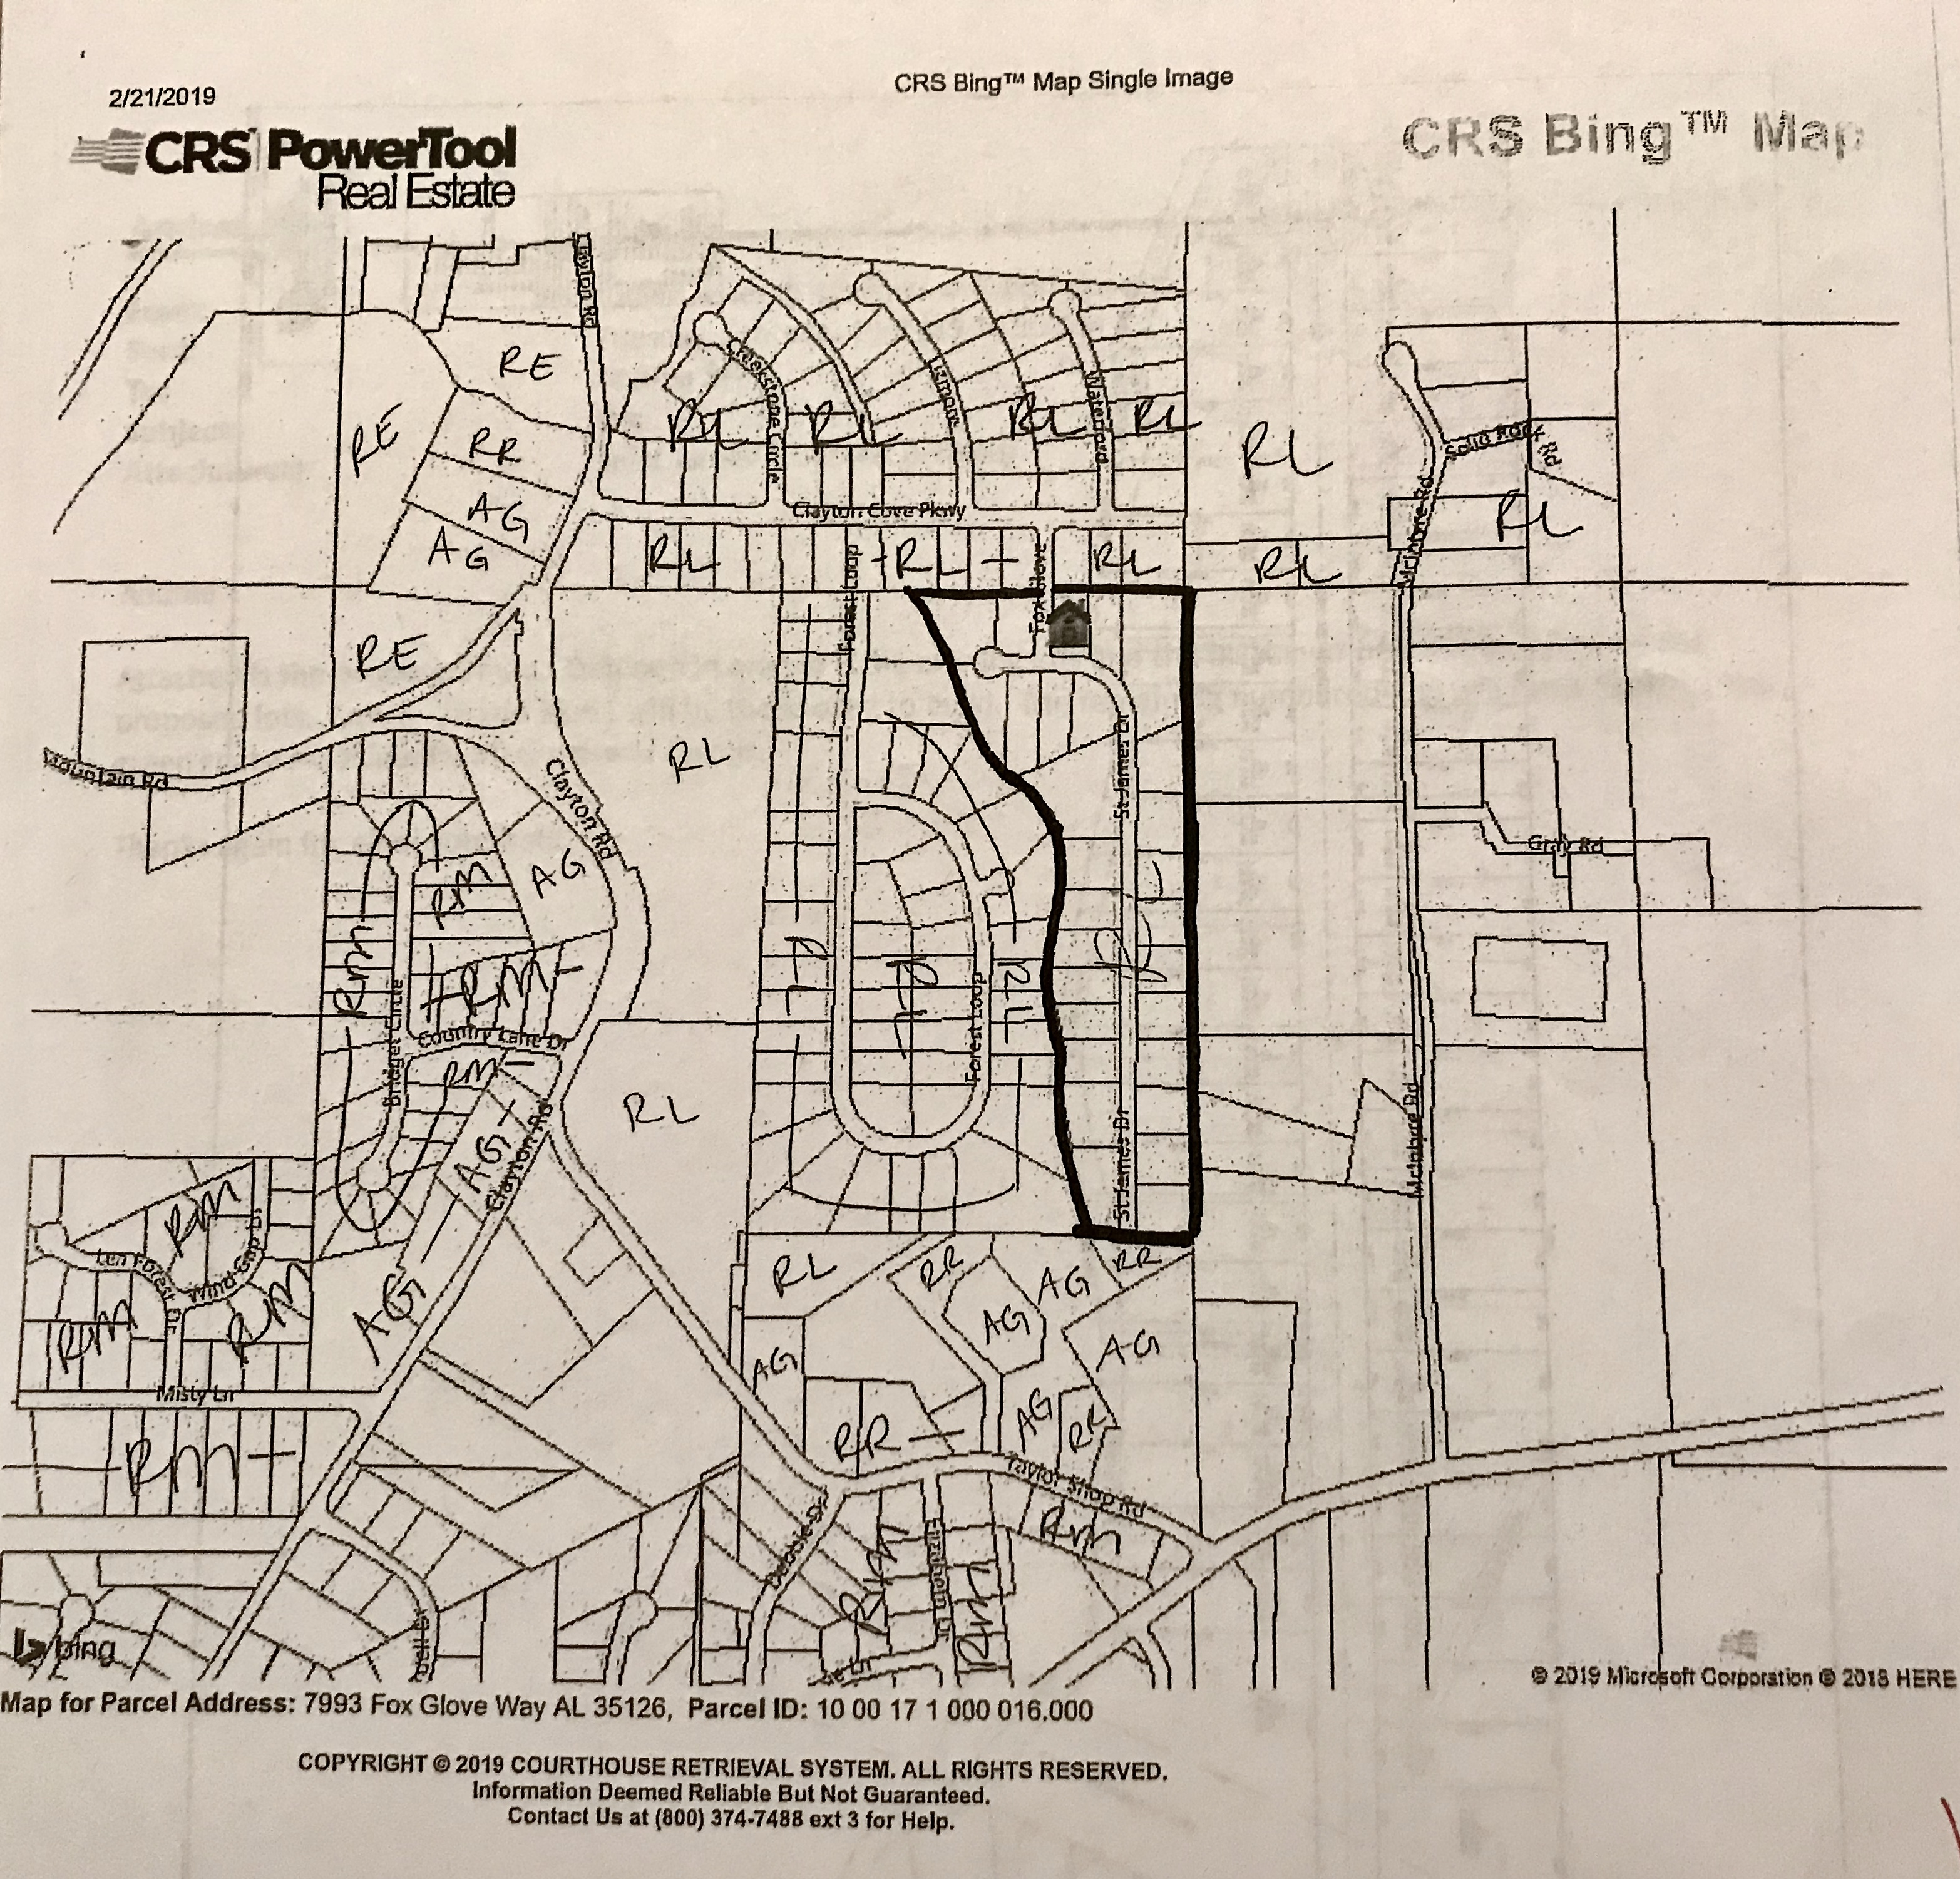 Clay Council motion to rezone Highland Green Sector III for garden